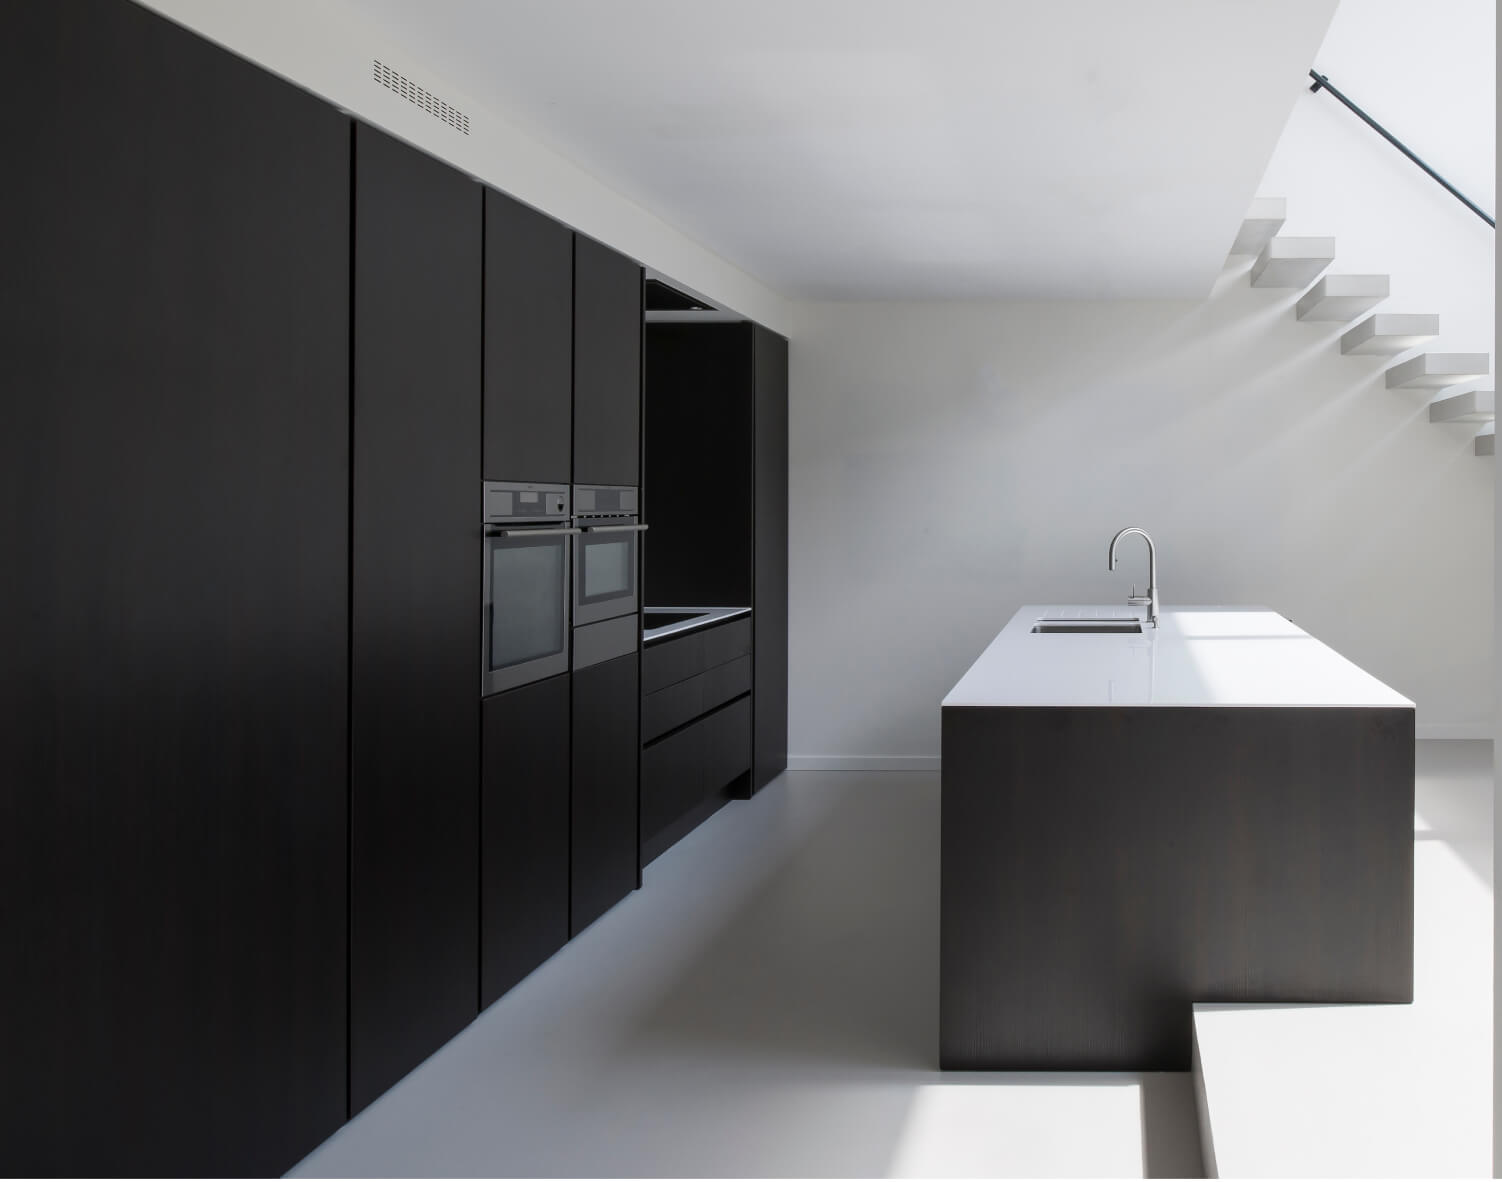 A picture of a minimal kitchen